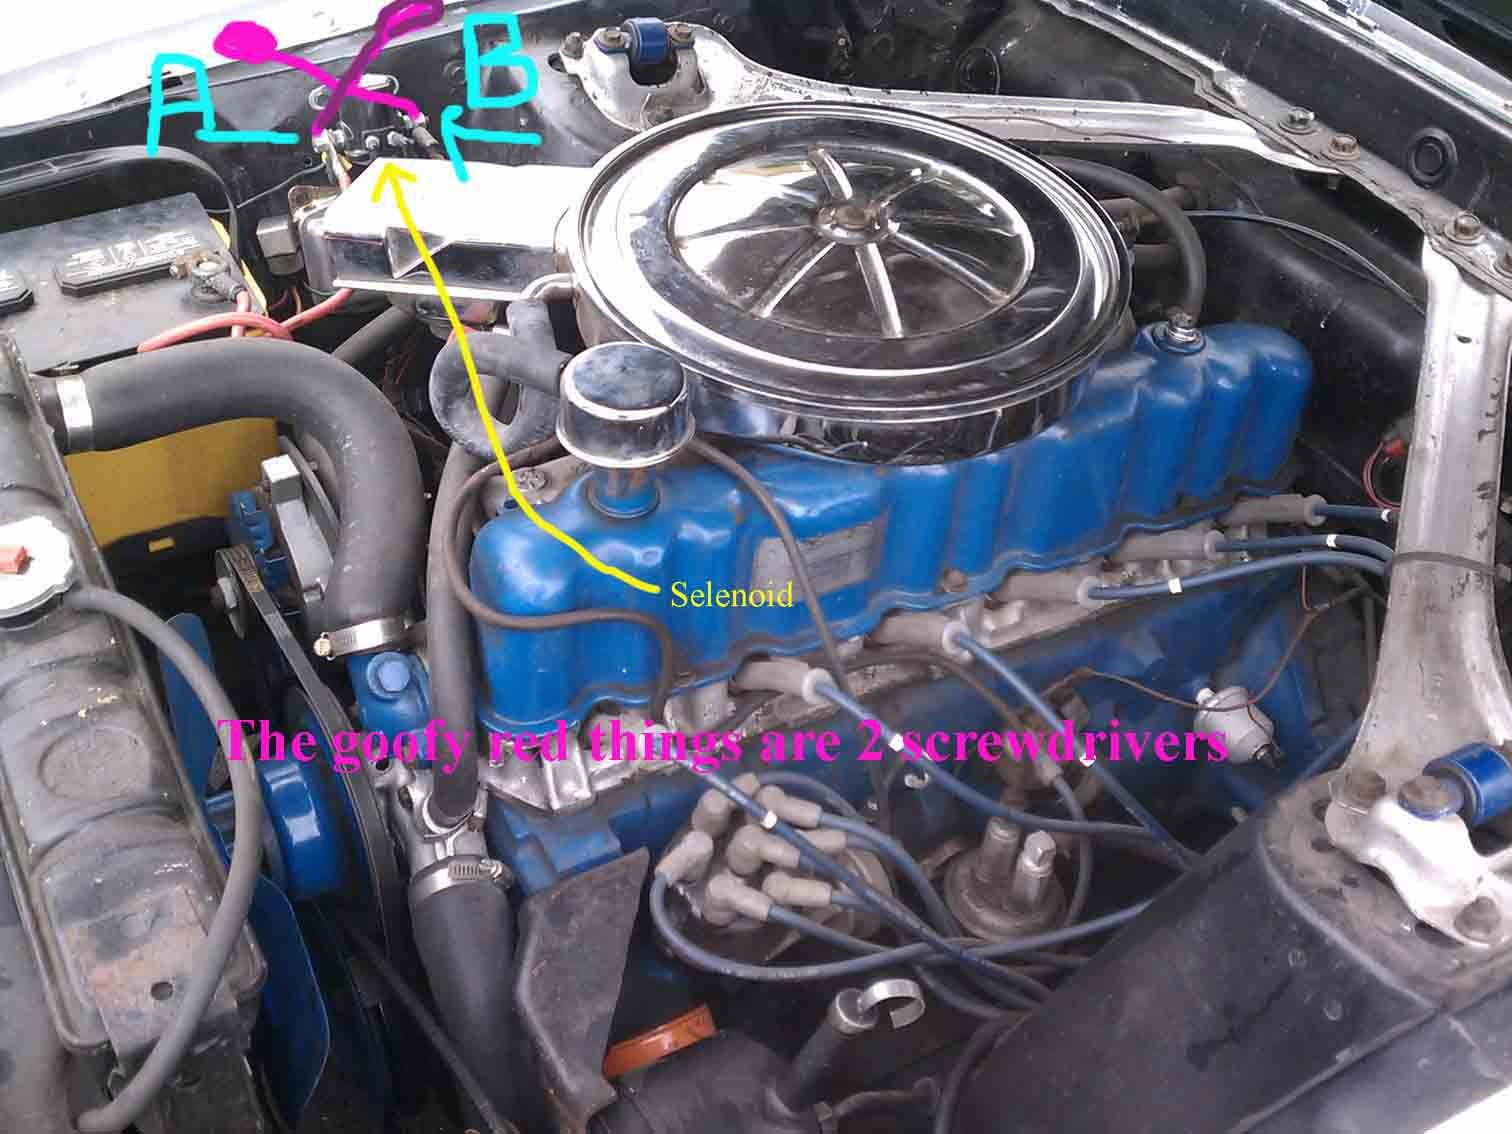 hight resolution of 113736d1287779759 1966 mustang need help staring straight six engine 6 cylinder luis ford ford straight 6 engine diagram